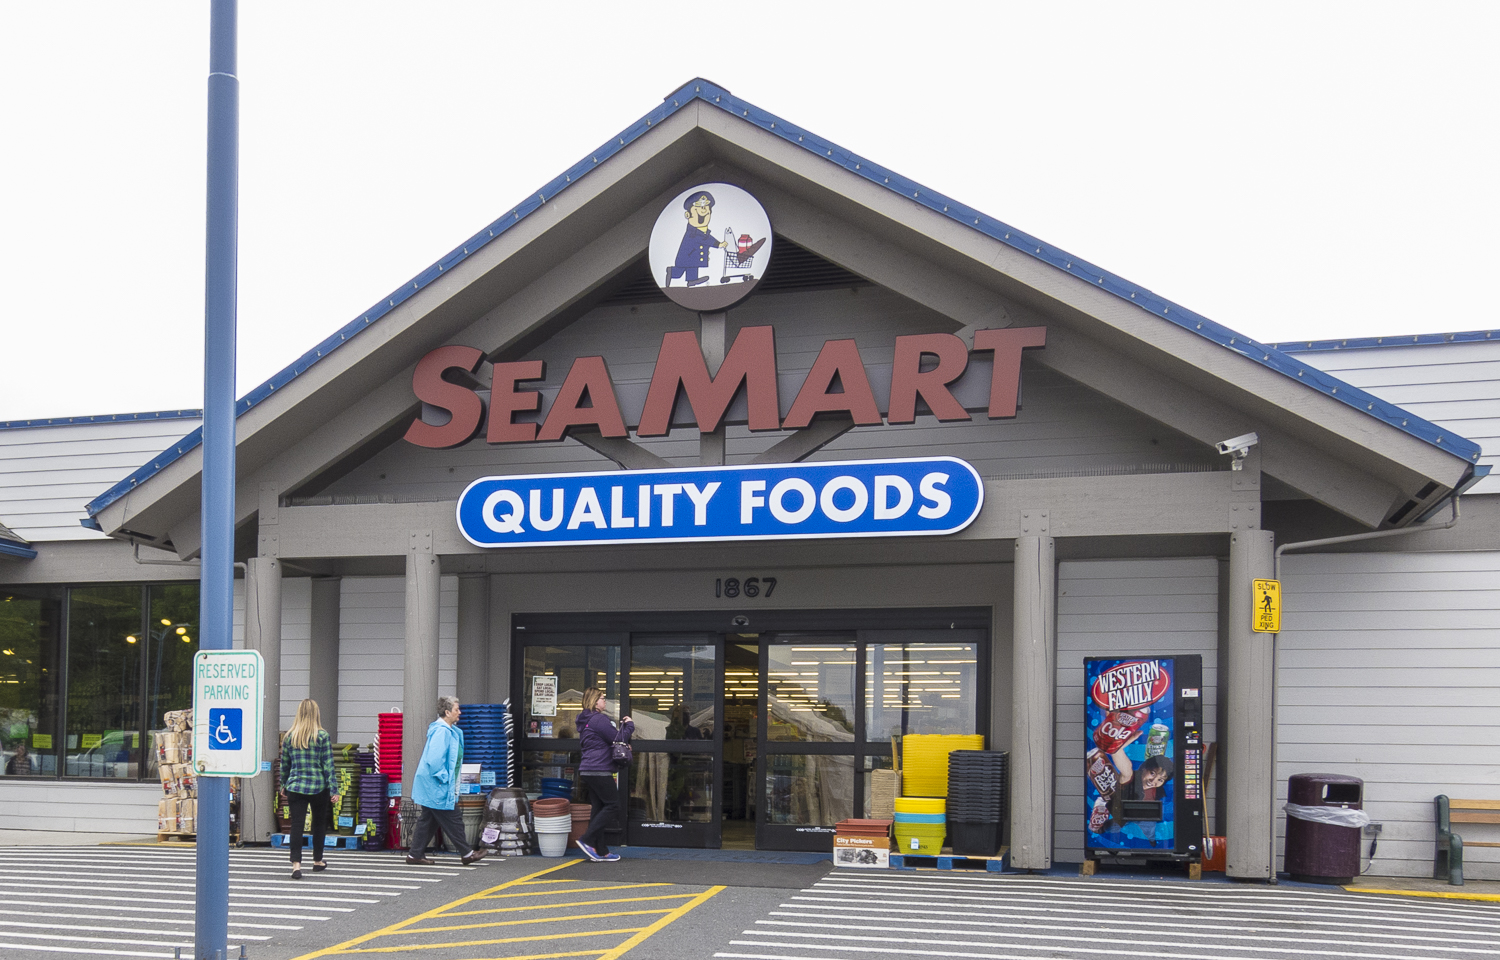 The Sea Mart grocery was an importent resource for us.